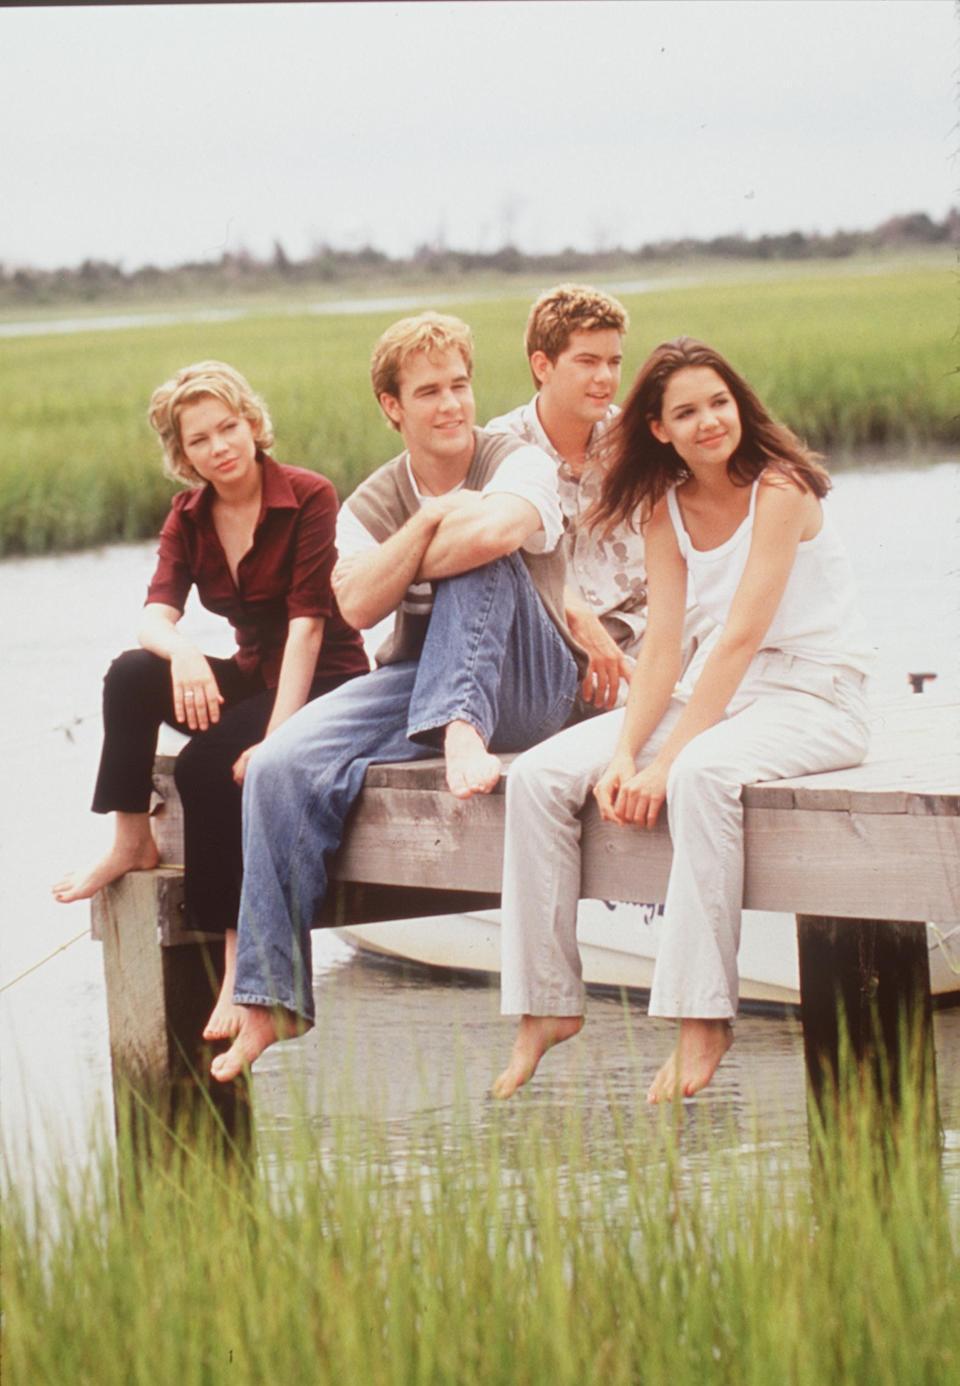 """<p>It's been more than 17 years since <em><a href=""""https://www.cosmopolitan.com/entertainment/tv/a15392674/dawsons-creek-pilot-thoughts/"""" rel=""""nofollow noopener"""" target=""""_blank"""" data-ylk=""""slk:Dawson's Creek"""" class=""""link rapid-noclick-resp"""">Dawson's Creek </a></em>ended on The WB, which the kids today know as The CW, but it's one of those teen dramas that's impossible to quit—and it just may be about to have a renaissance. Some of us (okay, me) were too young to watch <em>Dawson's Creek</em> when it aired the first time, but the series has lived on in the years since via DVD and streaming, and as of November 1, it's officially back on Netflix in full, even if the original Paula Cole theme song won't be playing at the beginning of each episode.</p><p>A <em>lot</em> has changed since <em>Dawson's Creek</em> signed off for the final episode in 2003. Some mega stars have been made from the series, like Katie Holmes and Michelle Williams, and the iPhone has been invented, along with a few other significant developments in society. </p><p>And of course, the cast themselves has changed, too, because two decades are a long time, after all.Before you begin your <em>Dawson's Creek</em> marathon, here's how the cast has changed since the series originally aired. </p>"""